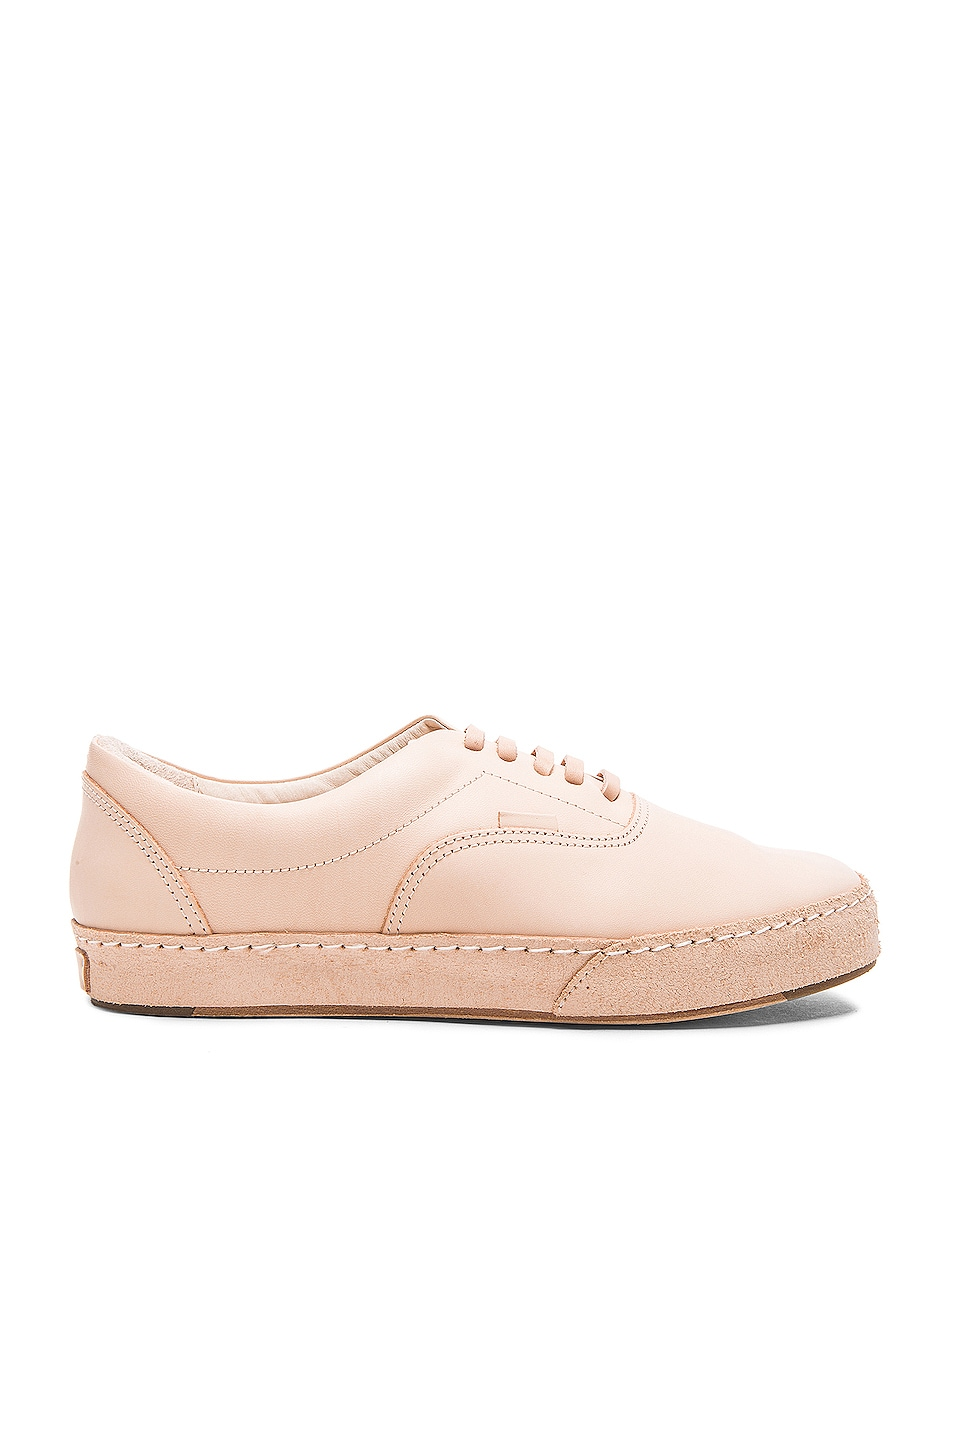 HENDER SCHEME Mip-04 Leather And Distressed Suede Sneakers in Neutrals